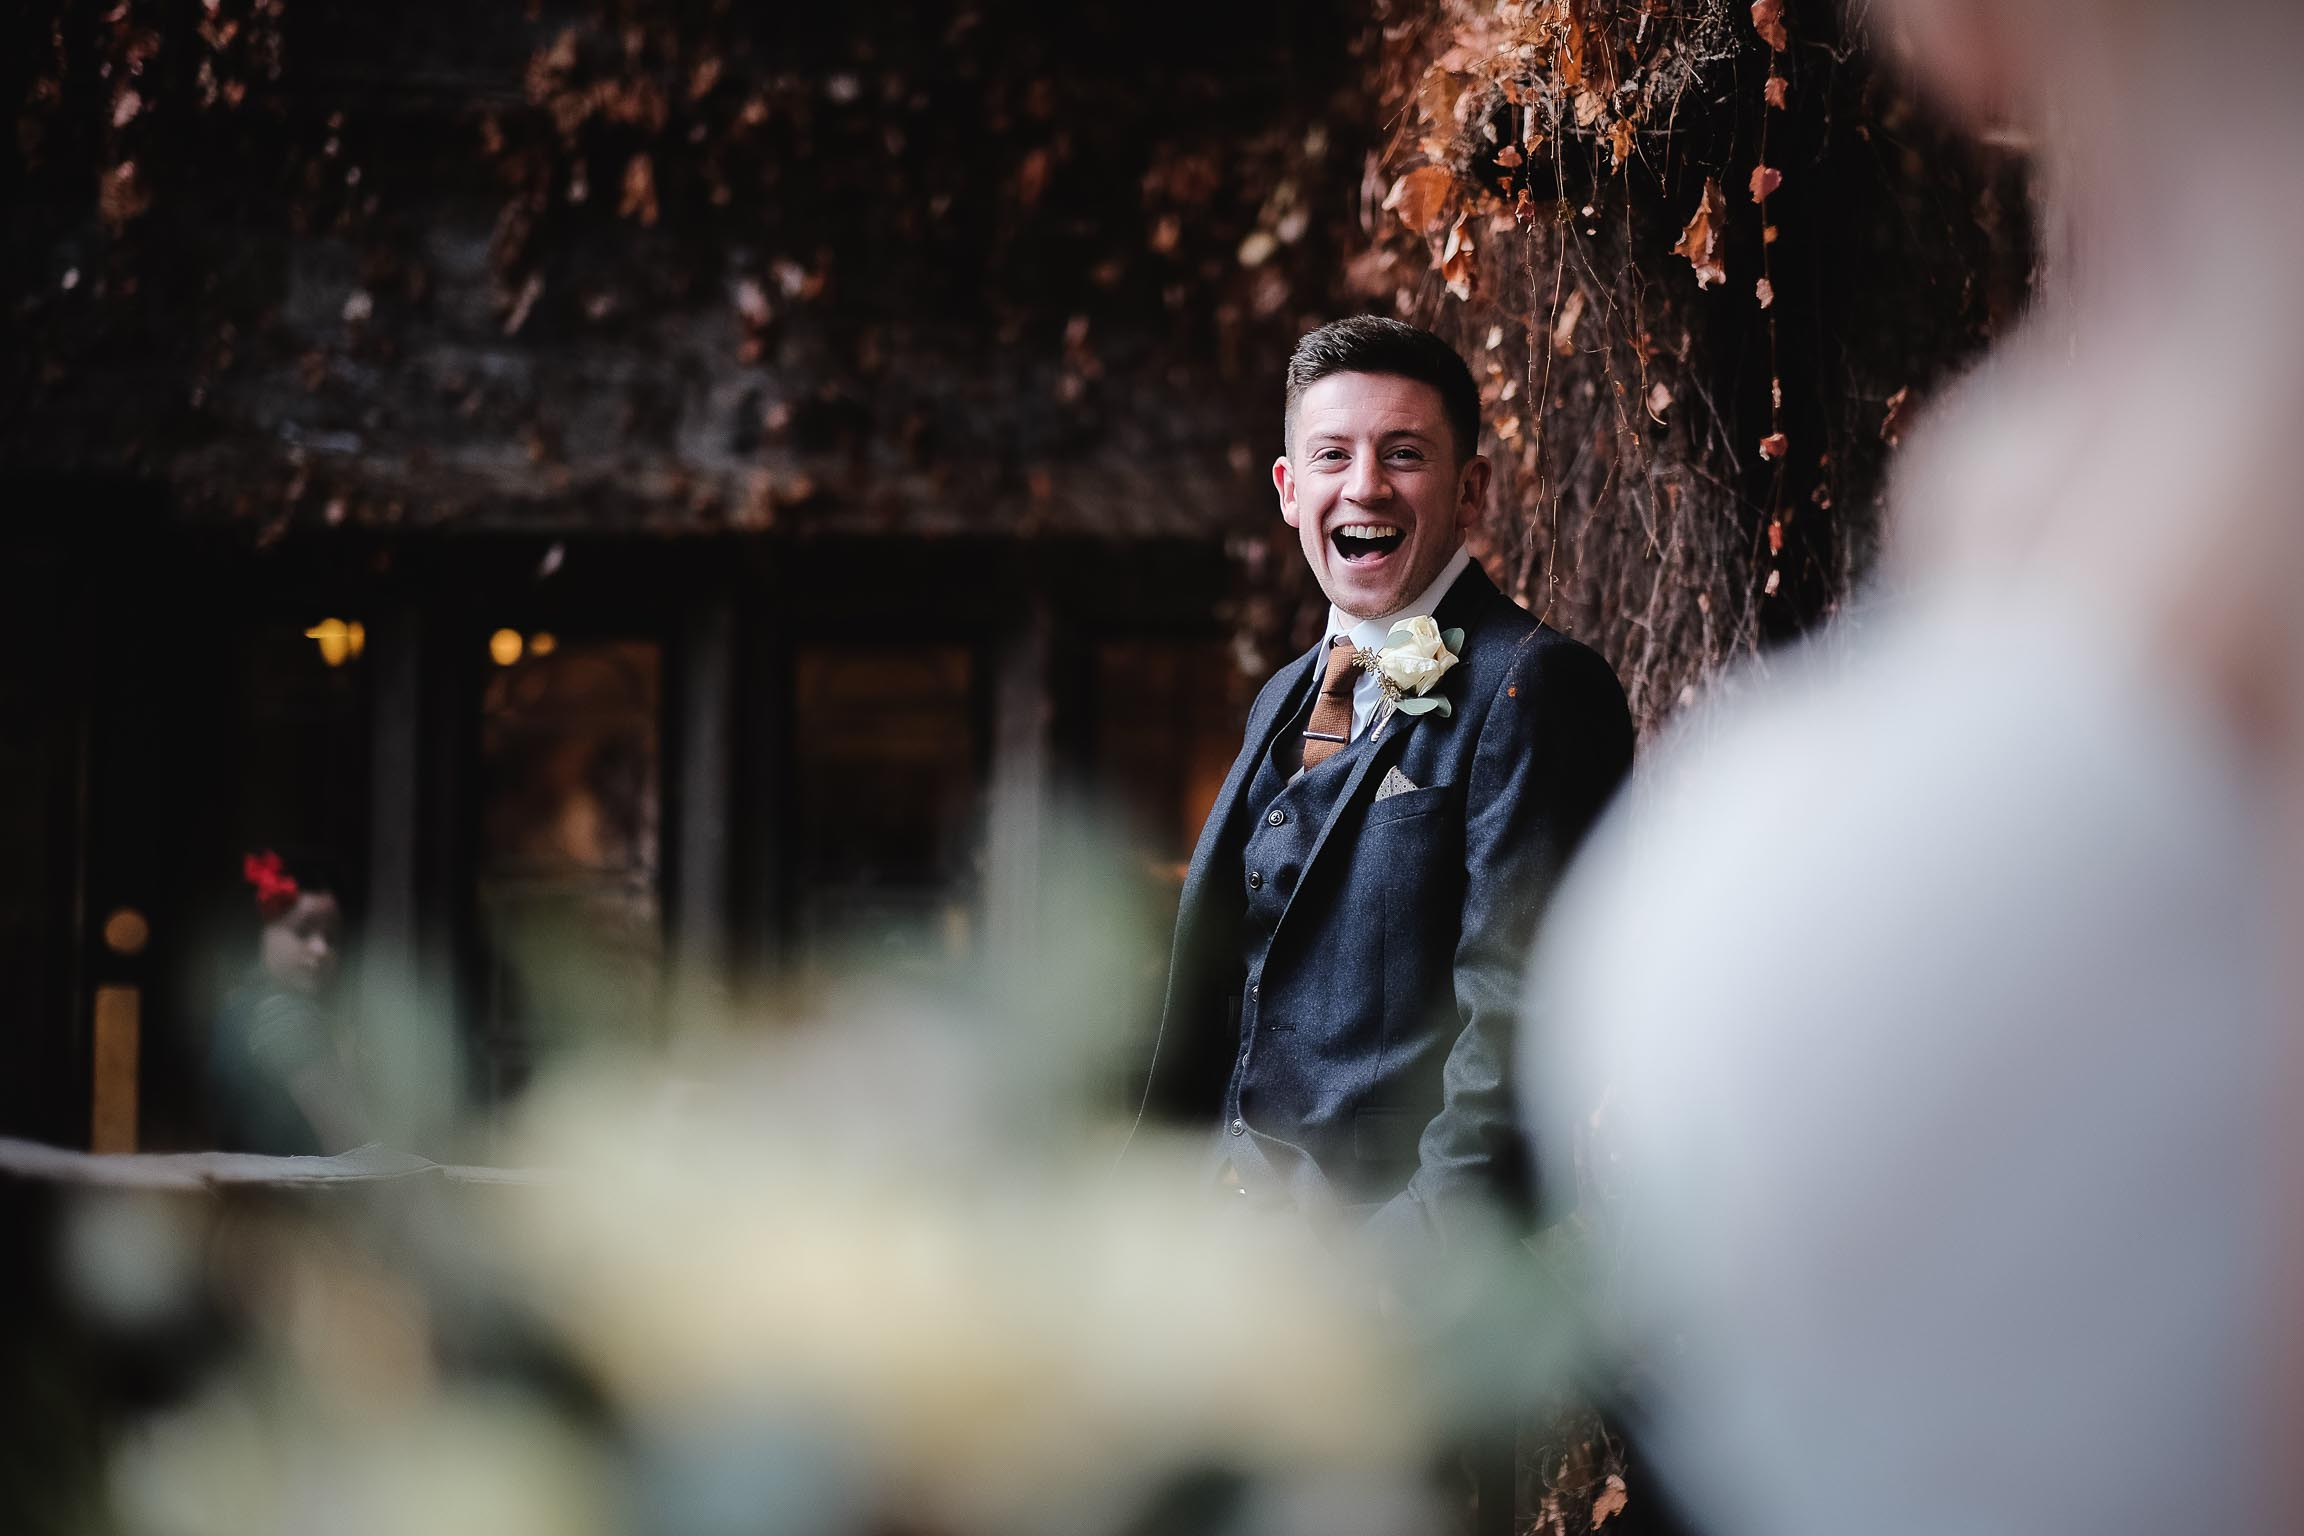 Stirk house clitheroe lancashire wedding photographer covering a documentary photography style  (57 of 85).jpg